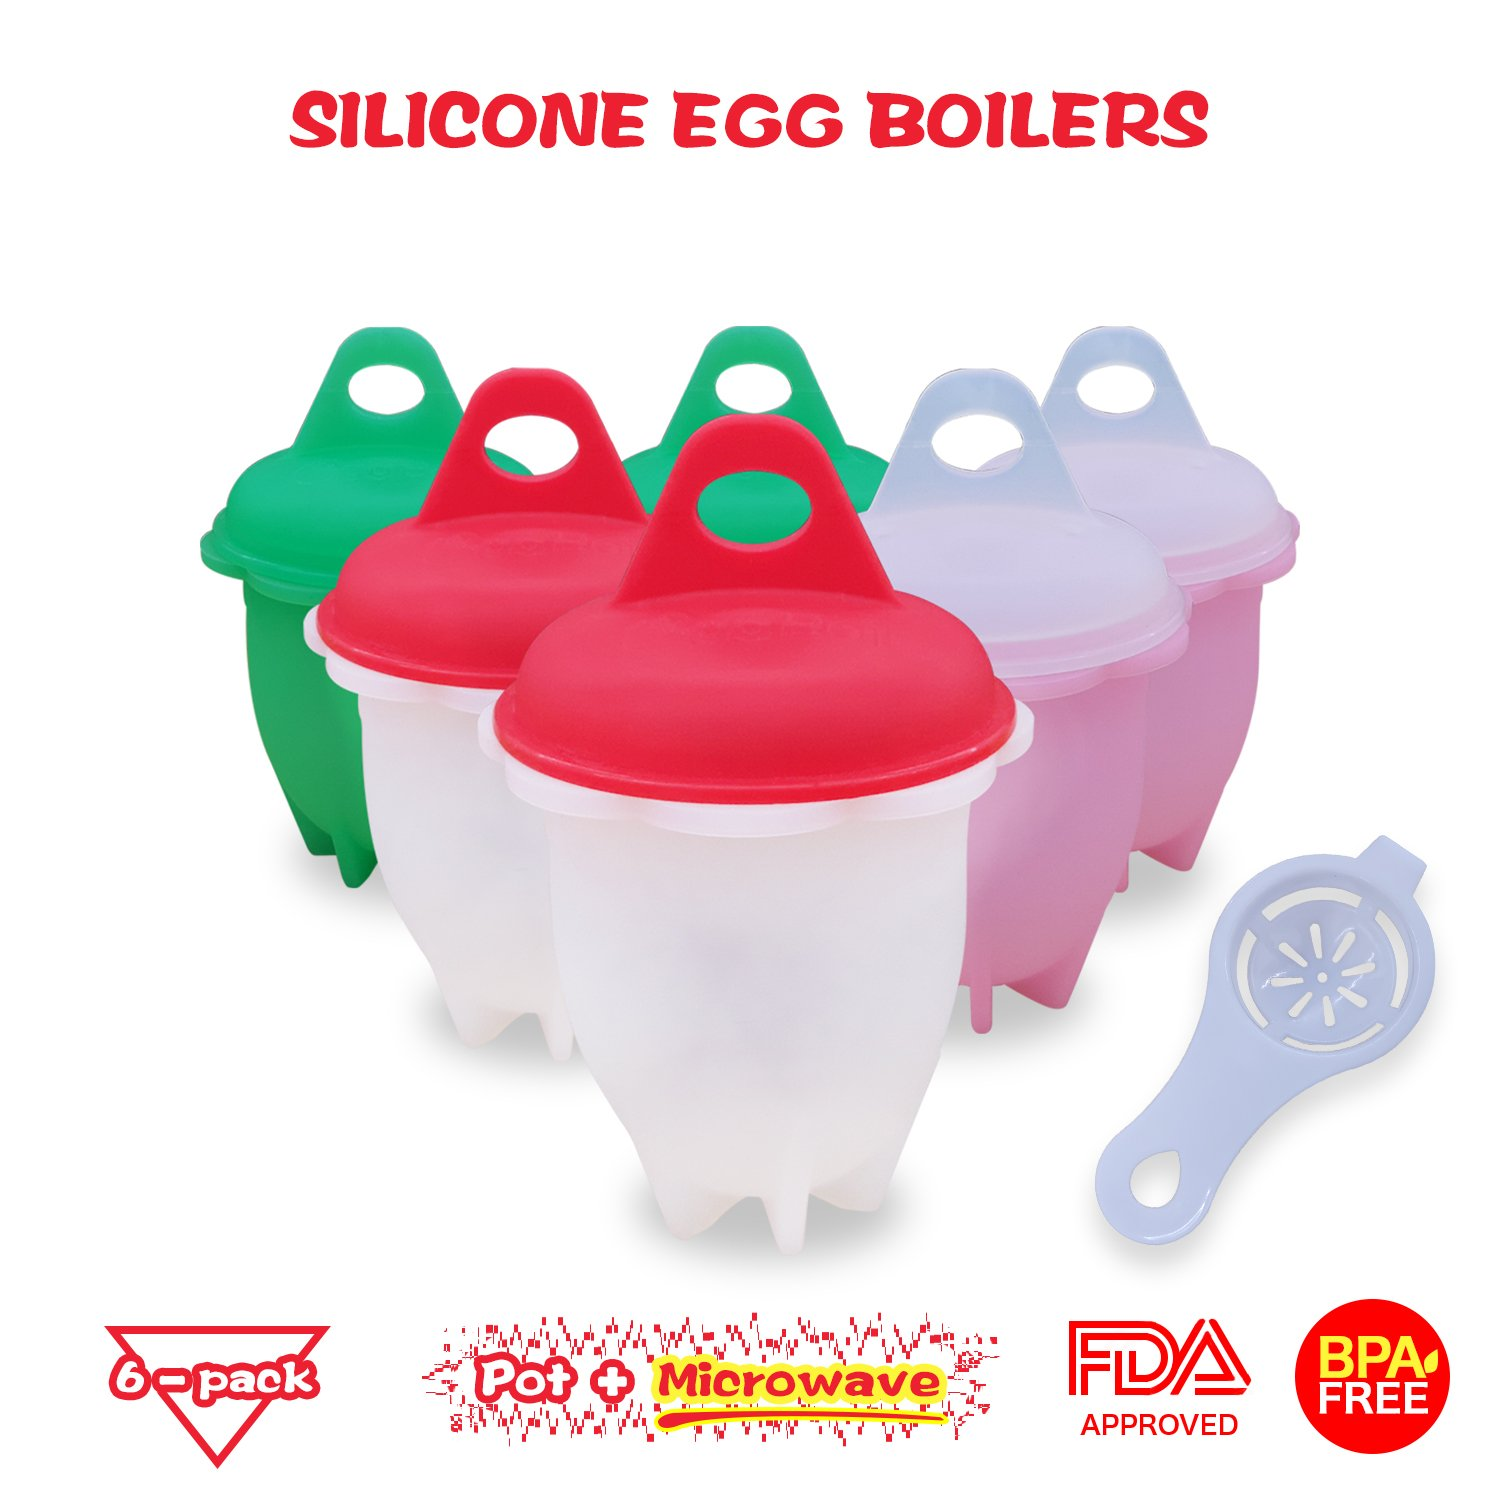 Food-Grade Non Stick Silicone Egg Cooker | BPA Free Egg Boiler | Egg Poacher Without Shell | High Temperature Resistant Egg Boil Cup For All Pots & Microwave